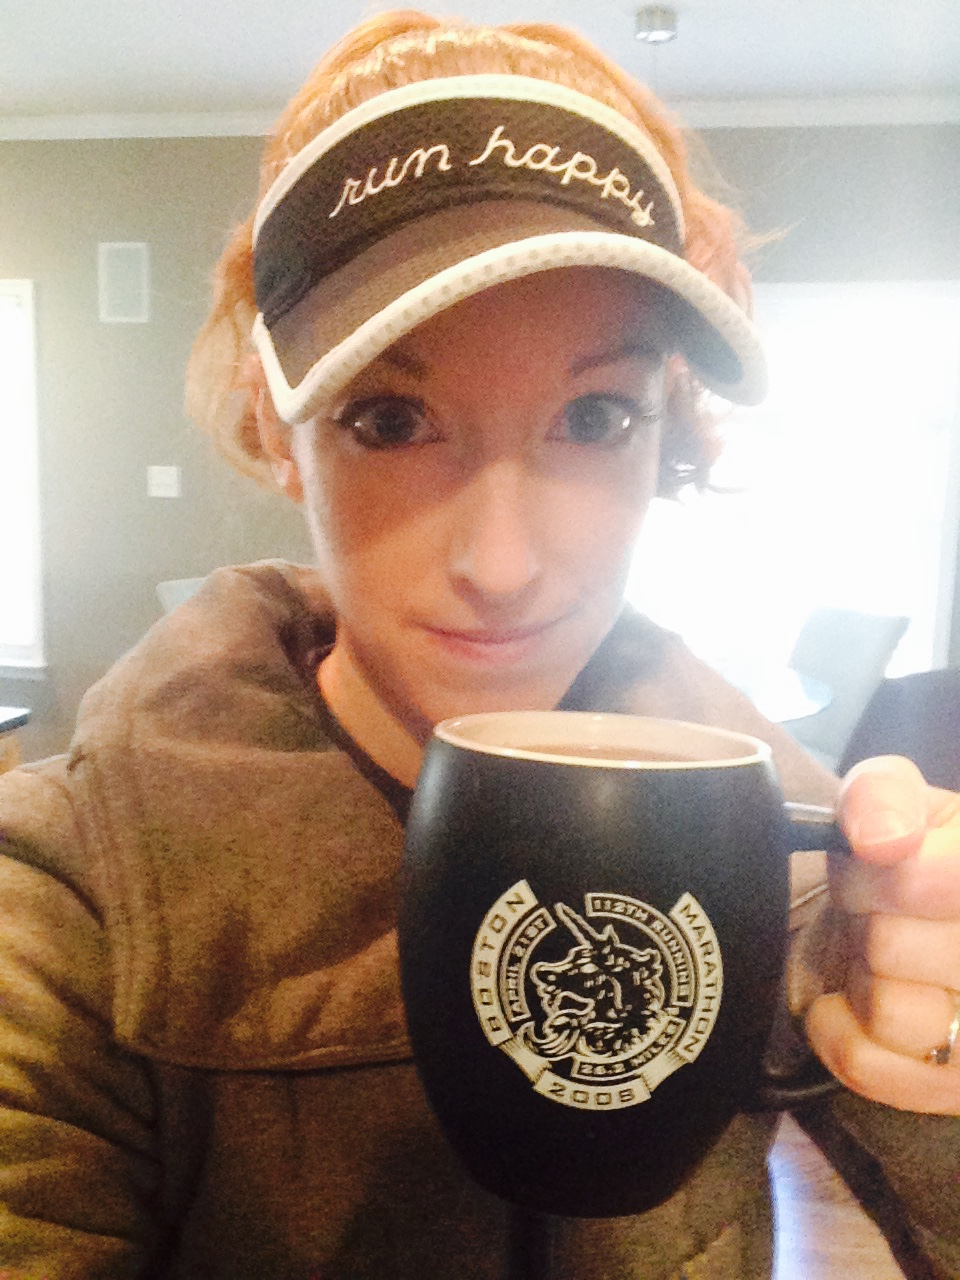 Coffee and a hat were mandatory for run #2 of the day.